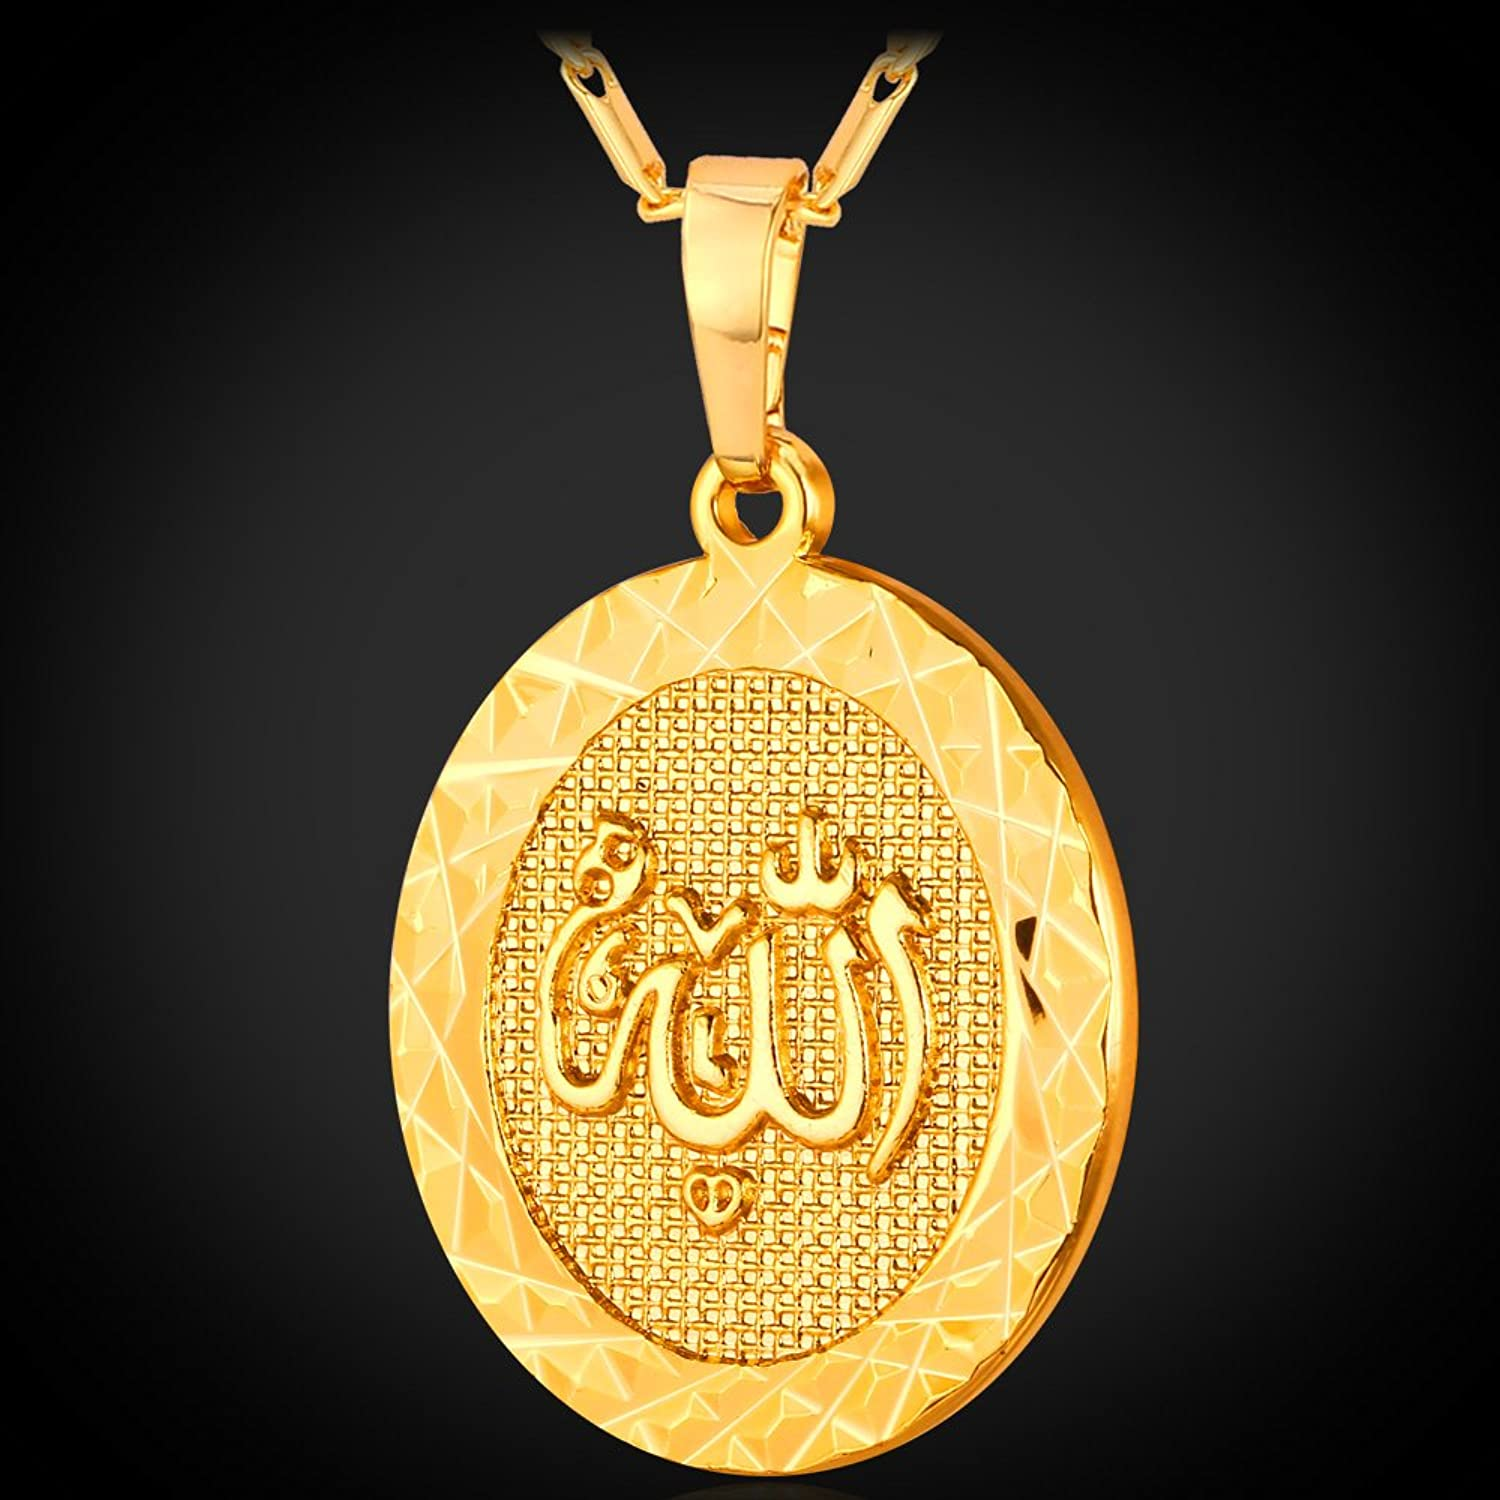 18k gold tone allah pendant with a 22 inch link chain necklace 18k gold tone allah pendant with a 22 inch link chain necklace amazon jewelry aloadofball Choice Image